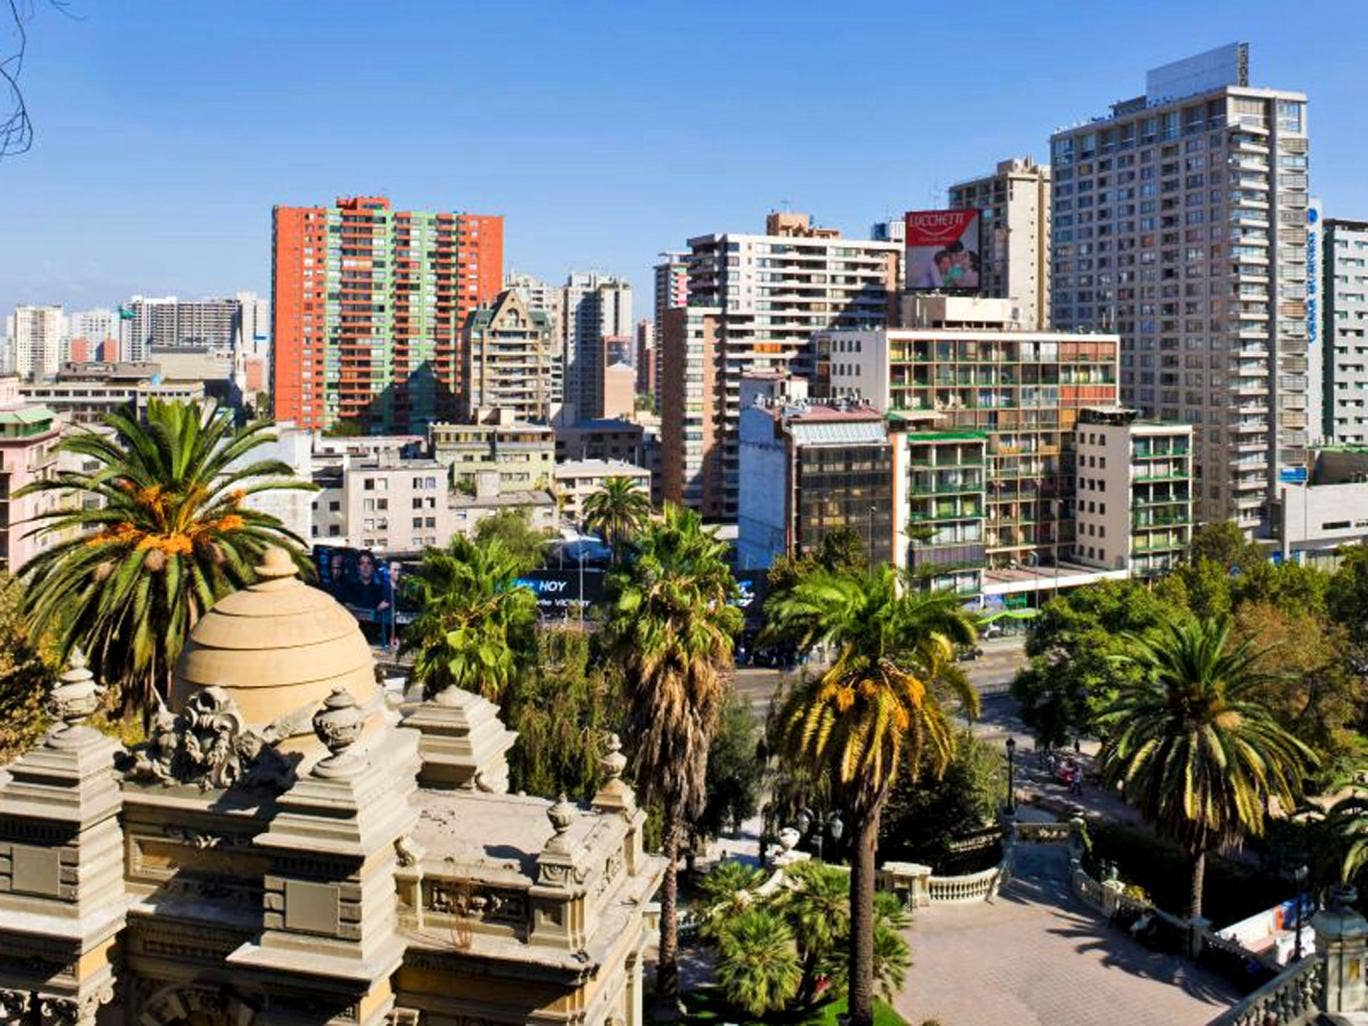 Tall order: Cerro Santa Lucia and the high-rise city